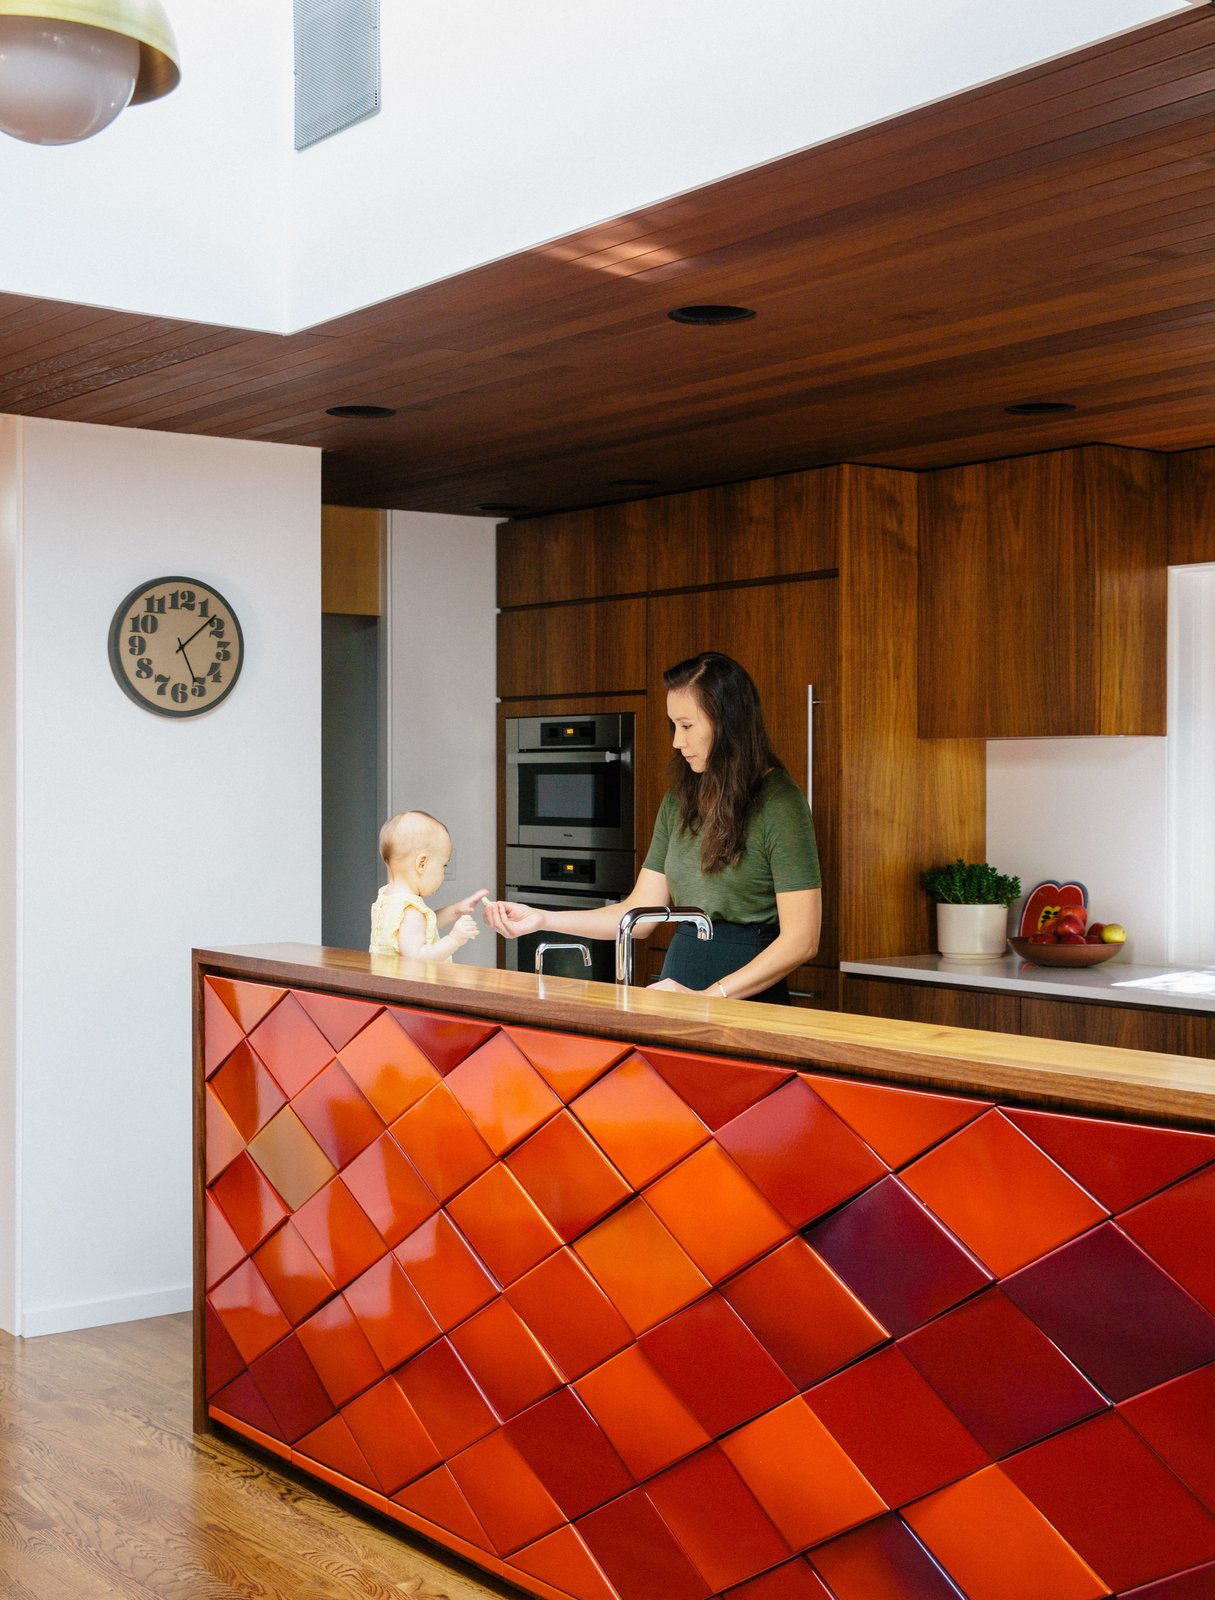 In the kitchen, Yuka makes baby Maude a snack at an island with original red tiles. Hanging cabinets were removed to maximize light and family-room views. Tagged: Kitchen, Wood Cabinet, Medium Hardwood Floor, Wall Oven, Ceiling Lighting, Recessed Lighting, and Pendant Lighting.  Photo 8 of 11 in Wood Paneling Loses its Dated Reputation with This Renovation of a 1959 Portland Gem